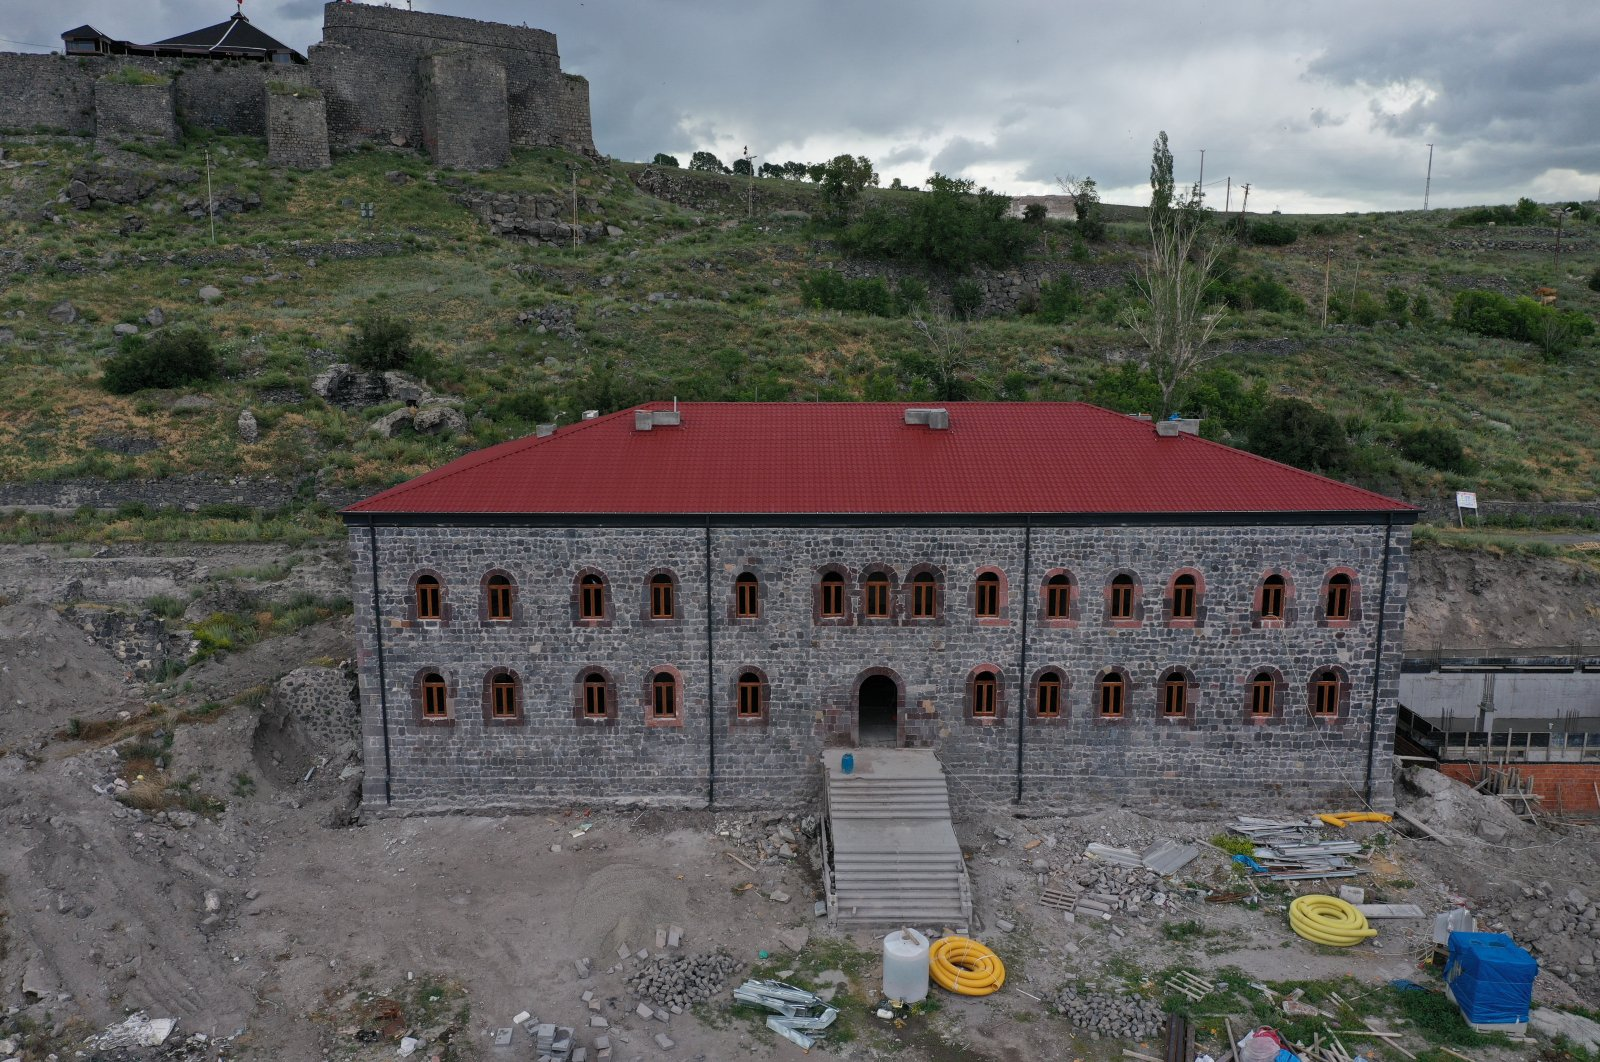 The historical Beylerbeyi Palace is seen on the outskirts of the Kars Castle on July 9, 2020. (AA PHOTO)